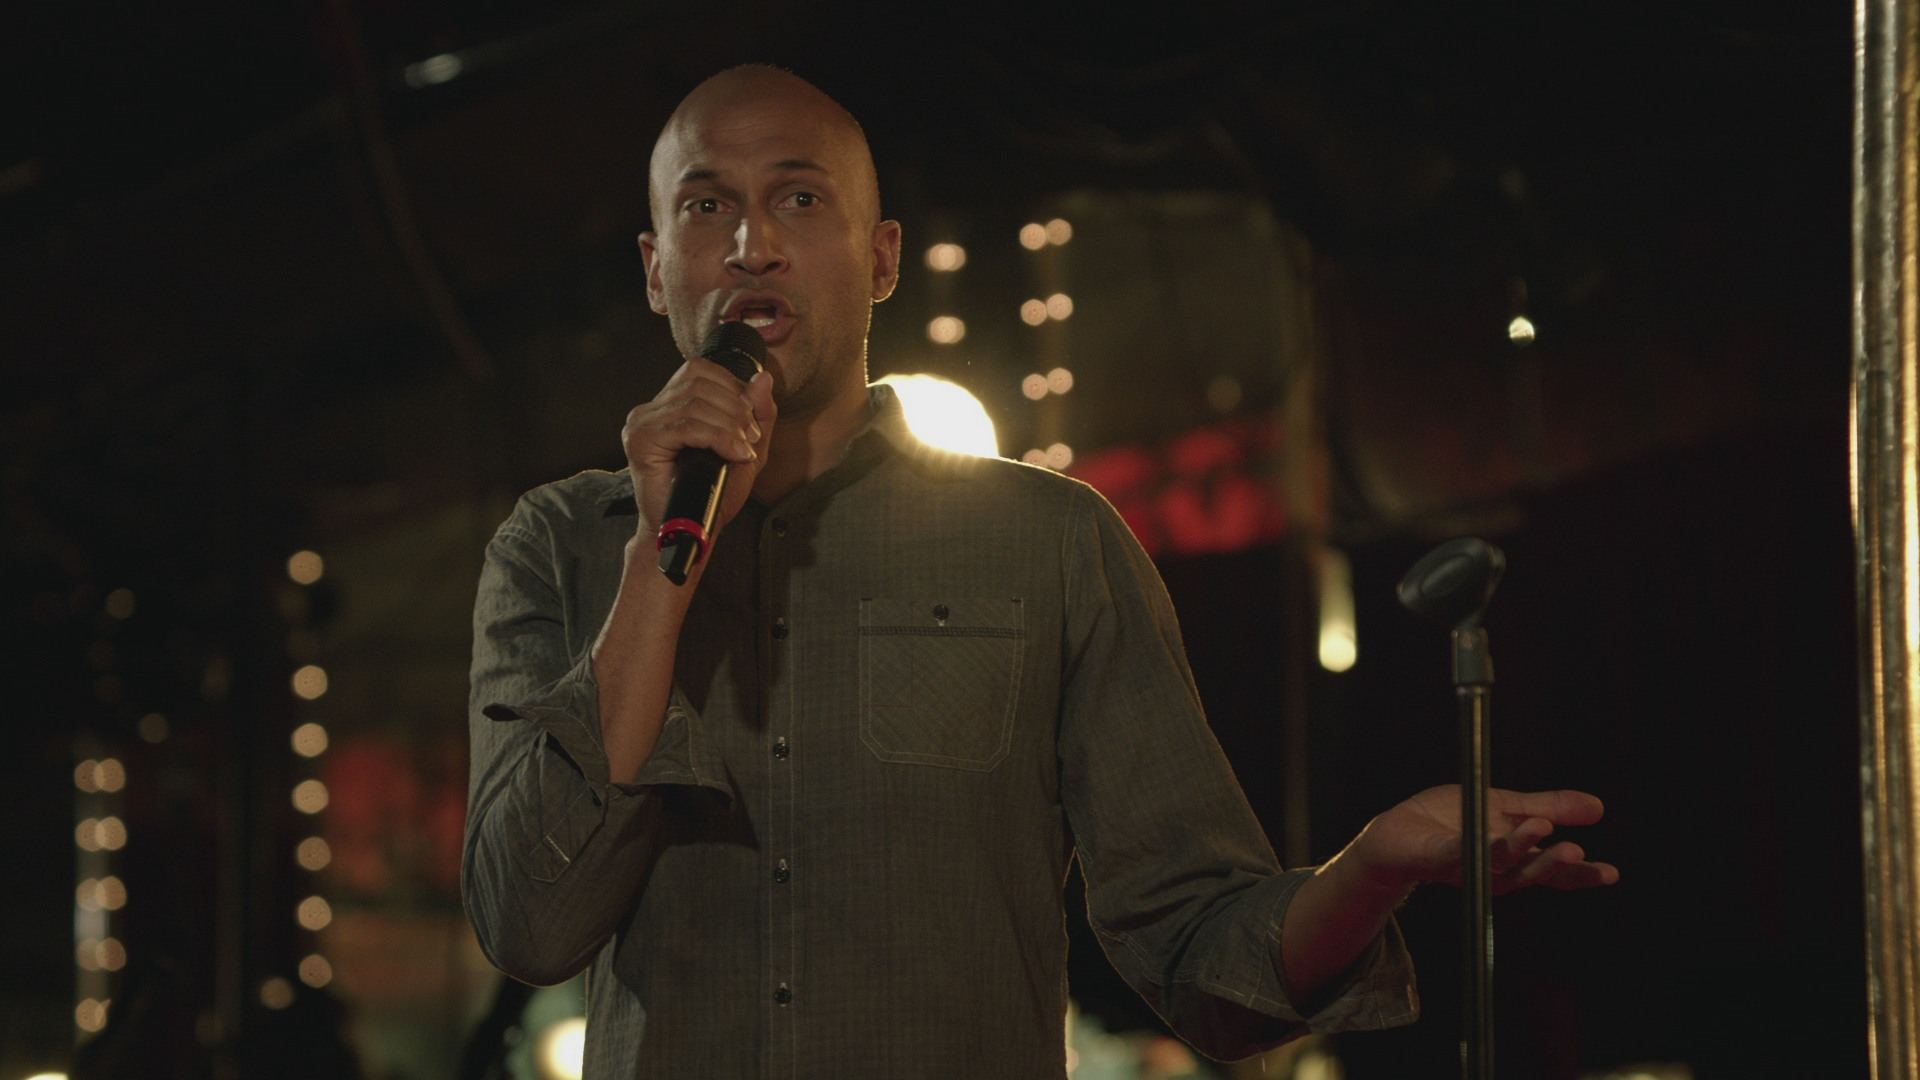 THIS IS NOT HAPPENING - KEEGAN-MICHAEL KEY'S DAY WITH A CRACKHEAD